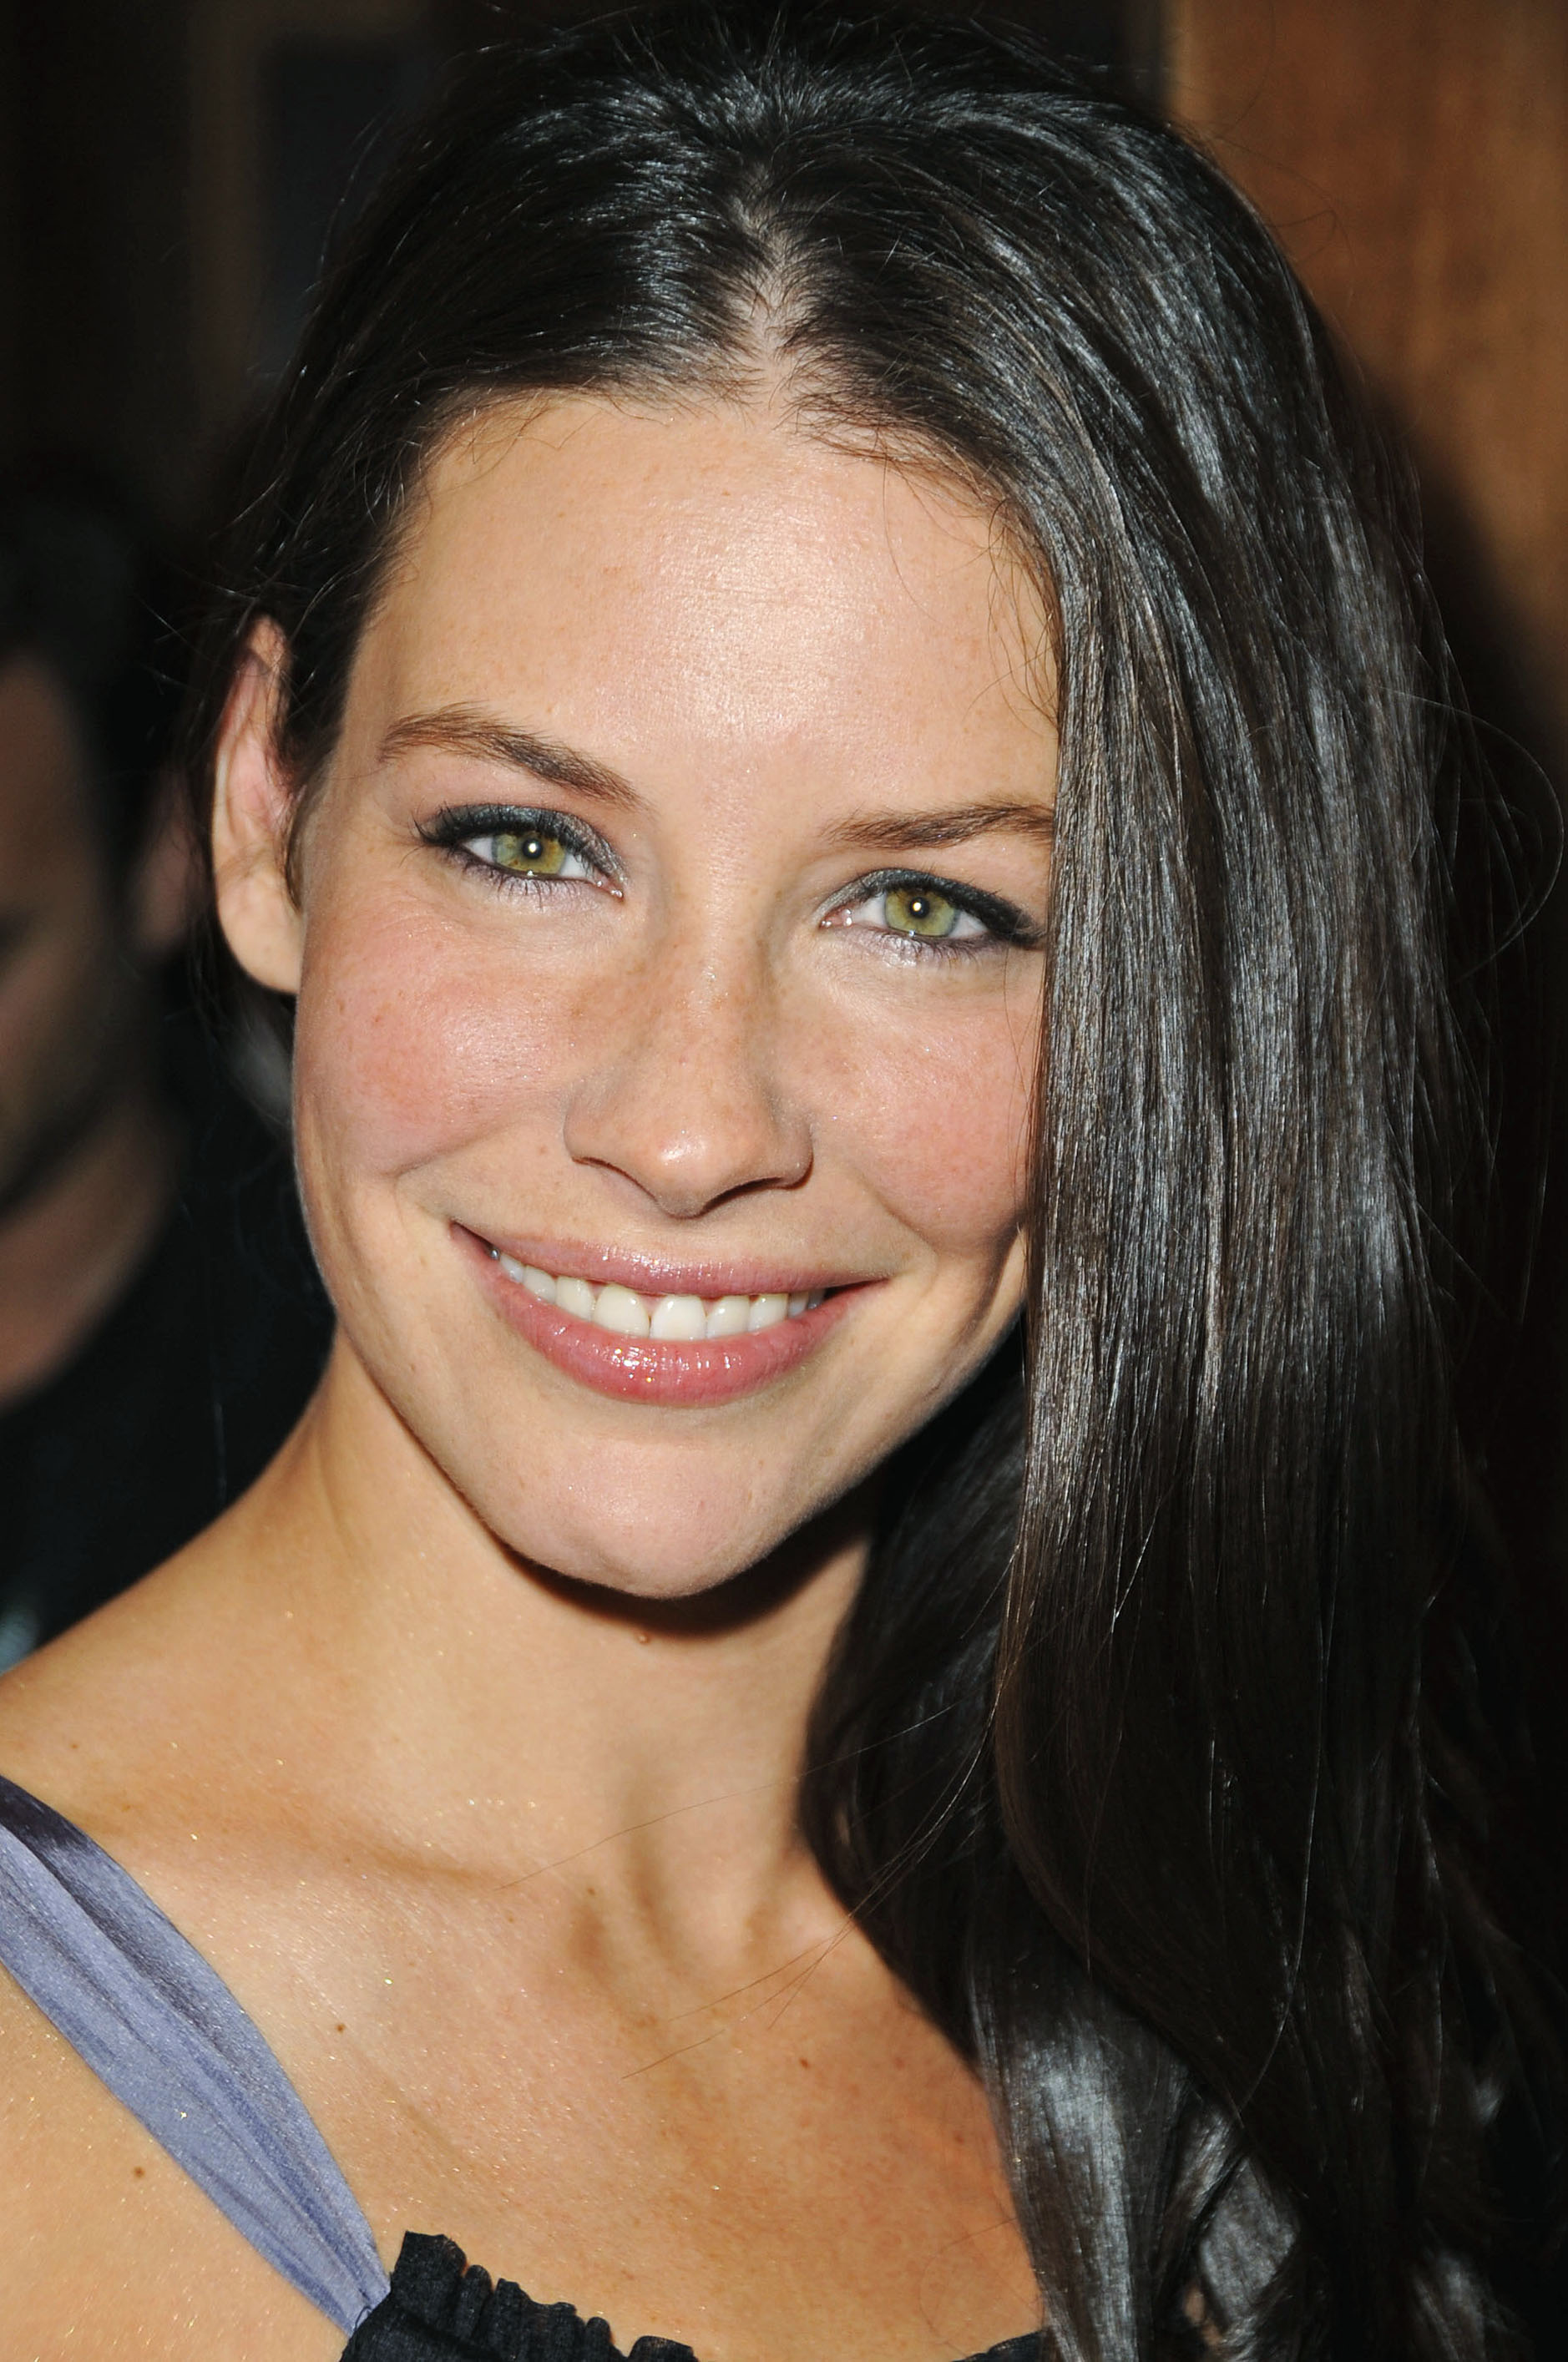 evangeline lilly photo 231 of 533 pics wallpaper photo 111860 theplace2. Black Bedroom Furniture Sets. Home Design Ideas